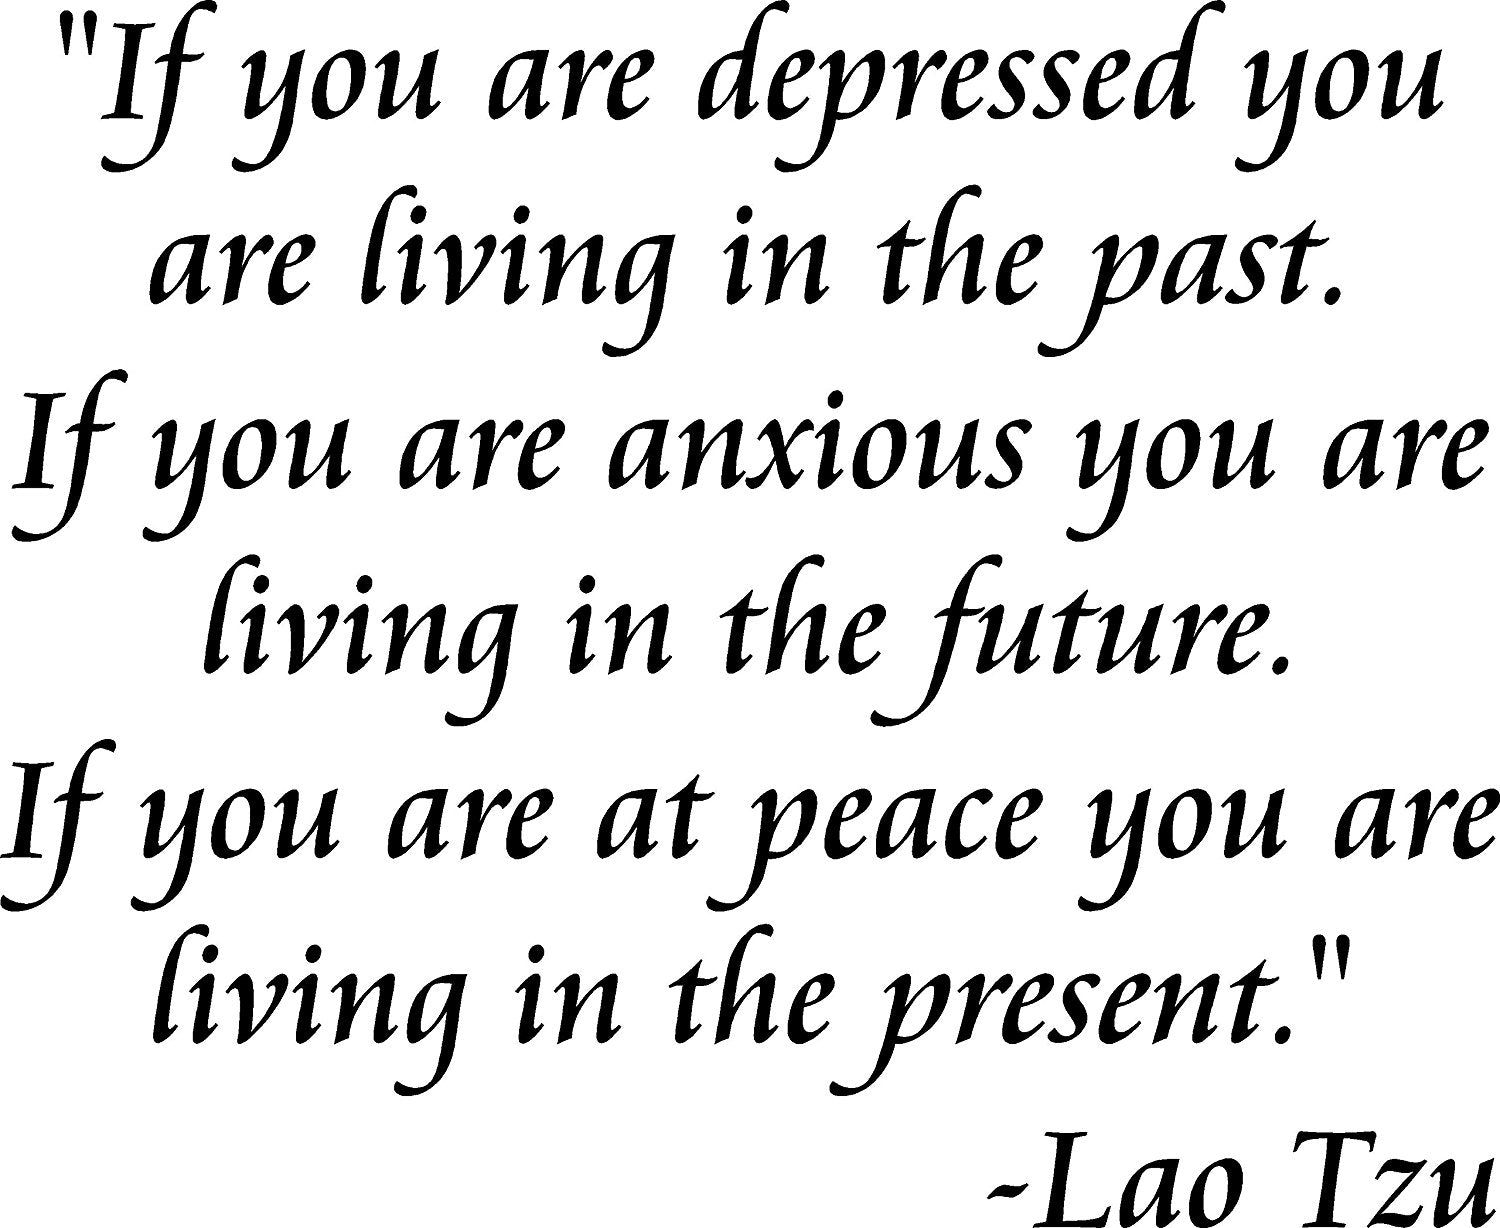 VWAQ If You Are Depressed You Are Living In The Past Wall Decal - VWAQ Vinyl Wall Art Quotes and Prints